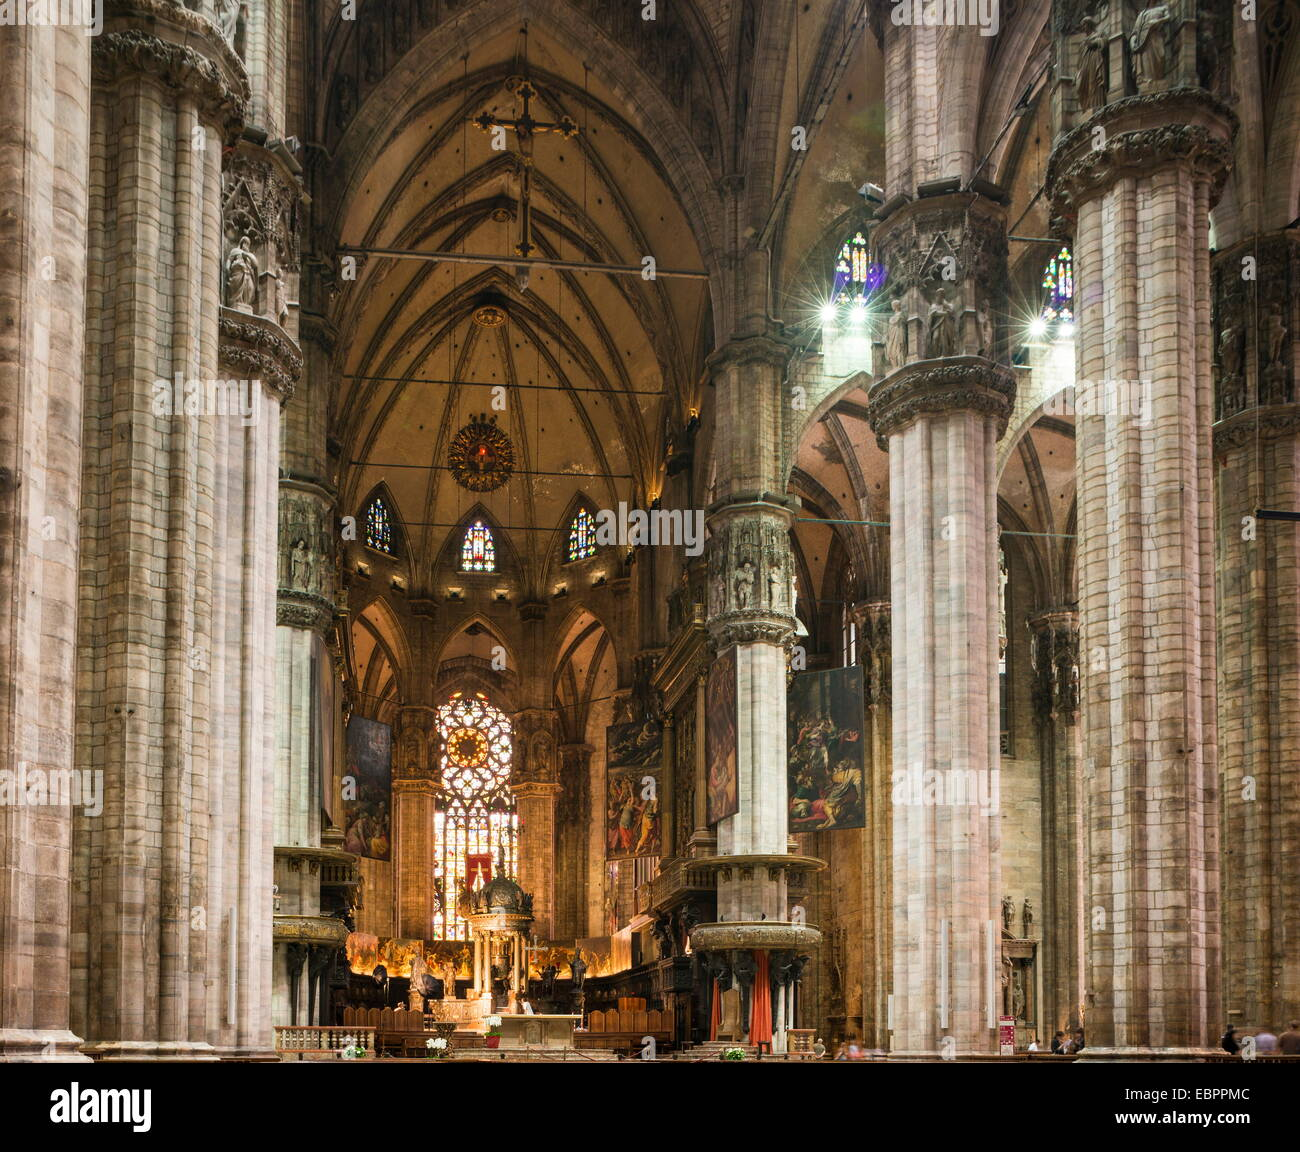 Interior of Milan Cathedral, Piazza Duomo, Milan, Lombardy, Italy, Europe - Stock Image